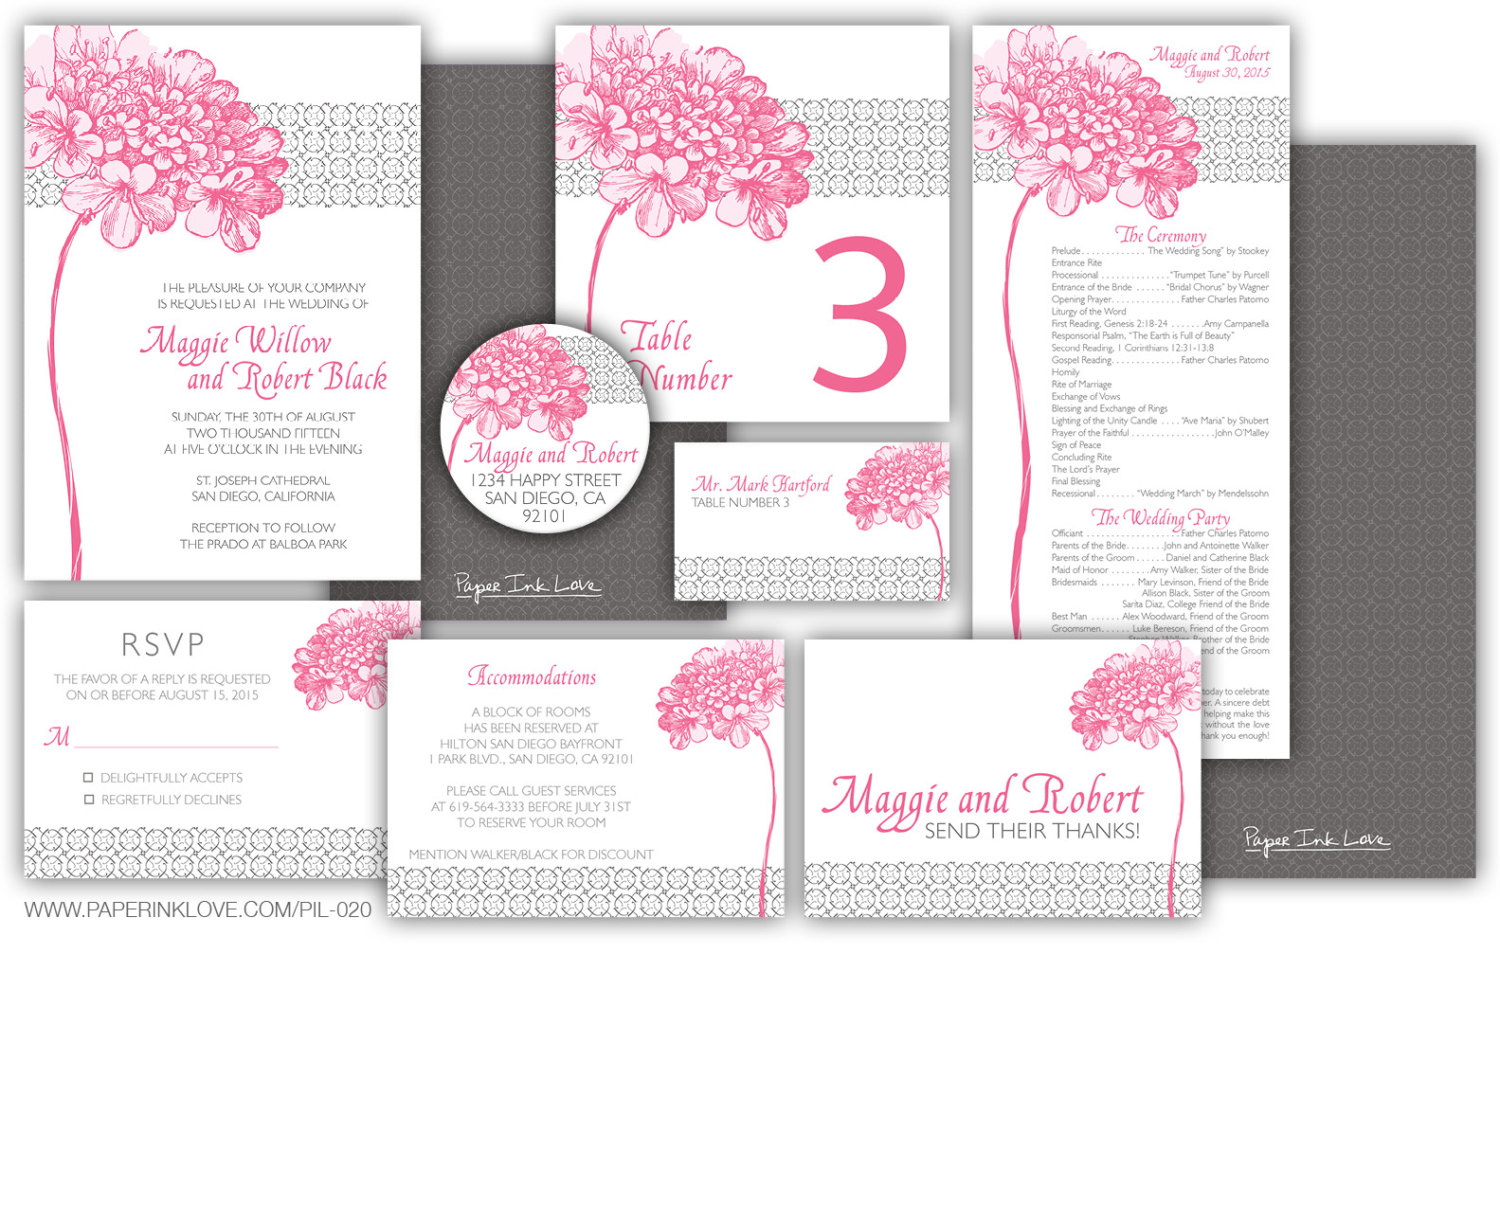 Need Wedding Invitations Fast? Here\'s the Quick Solution!